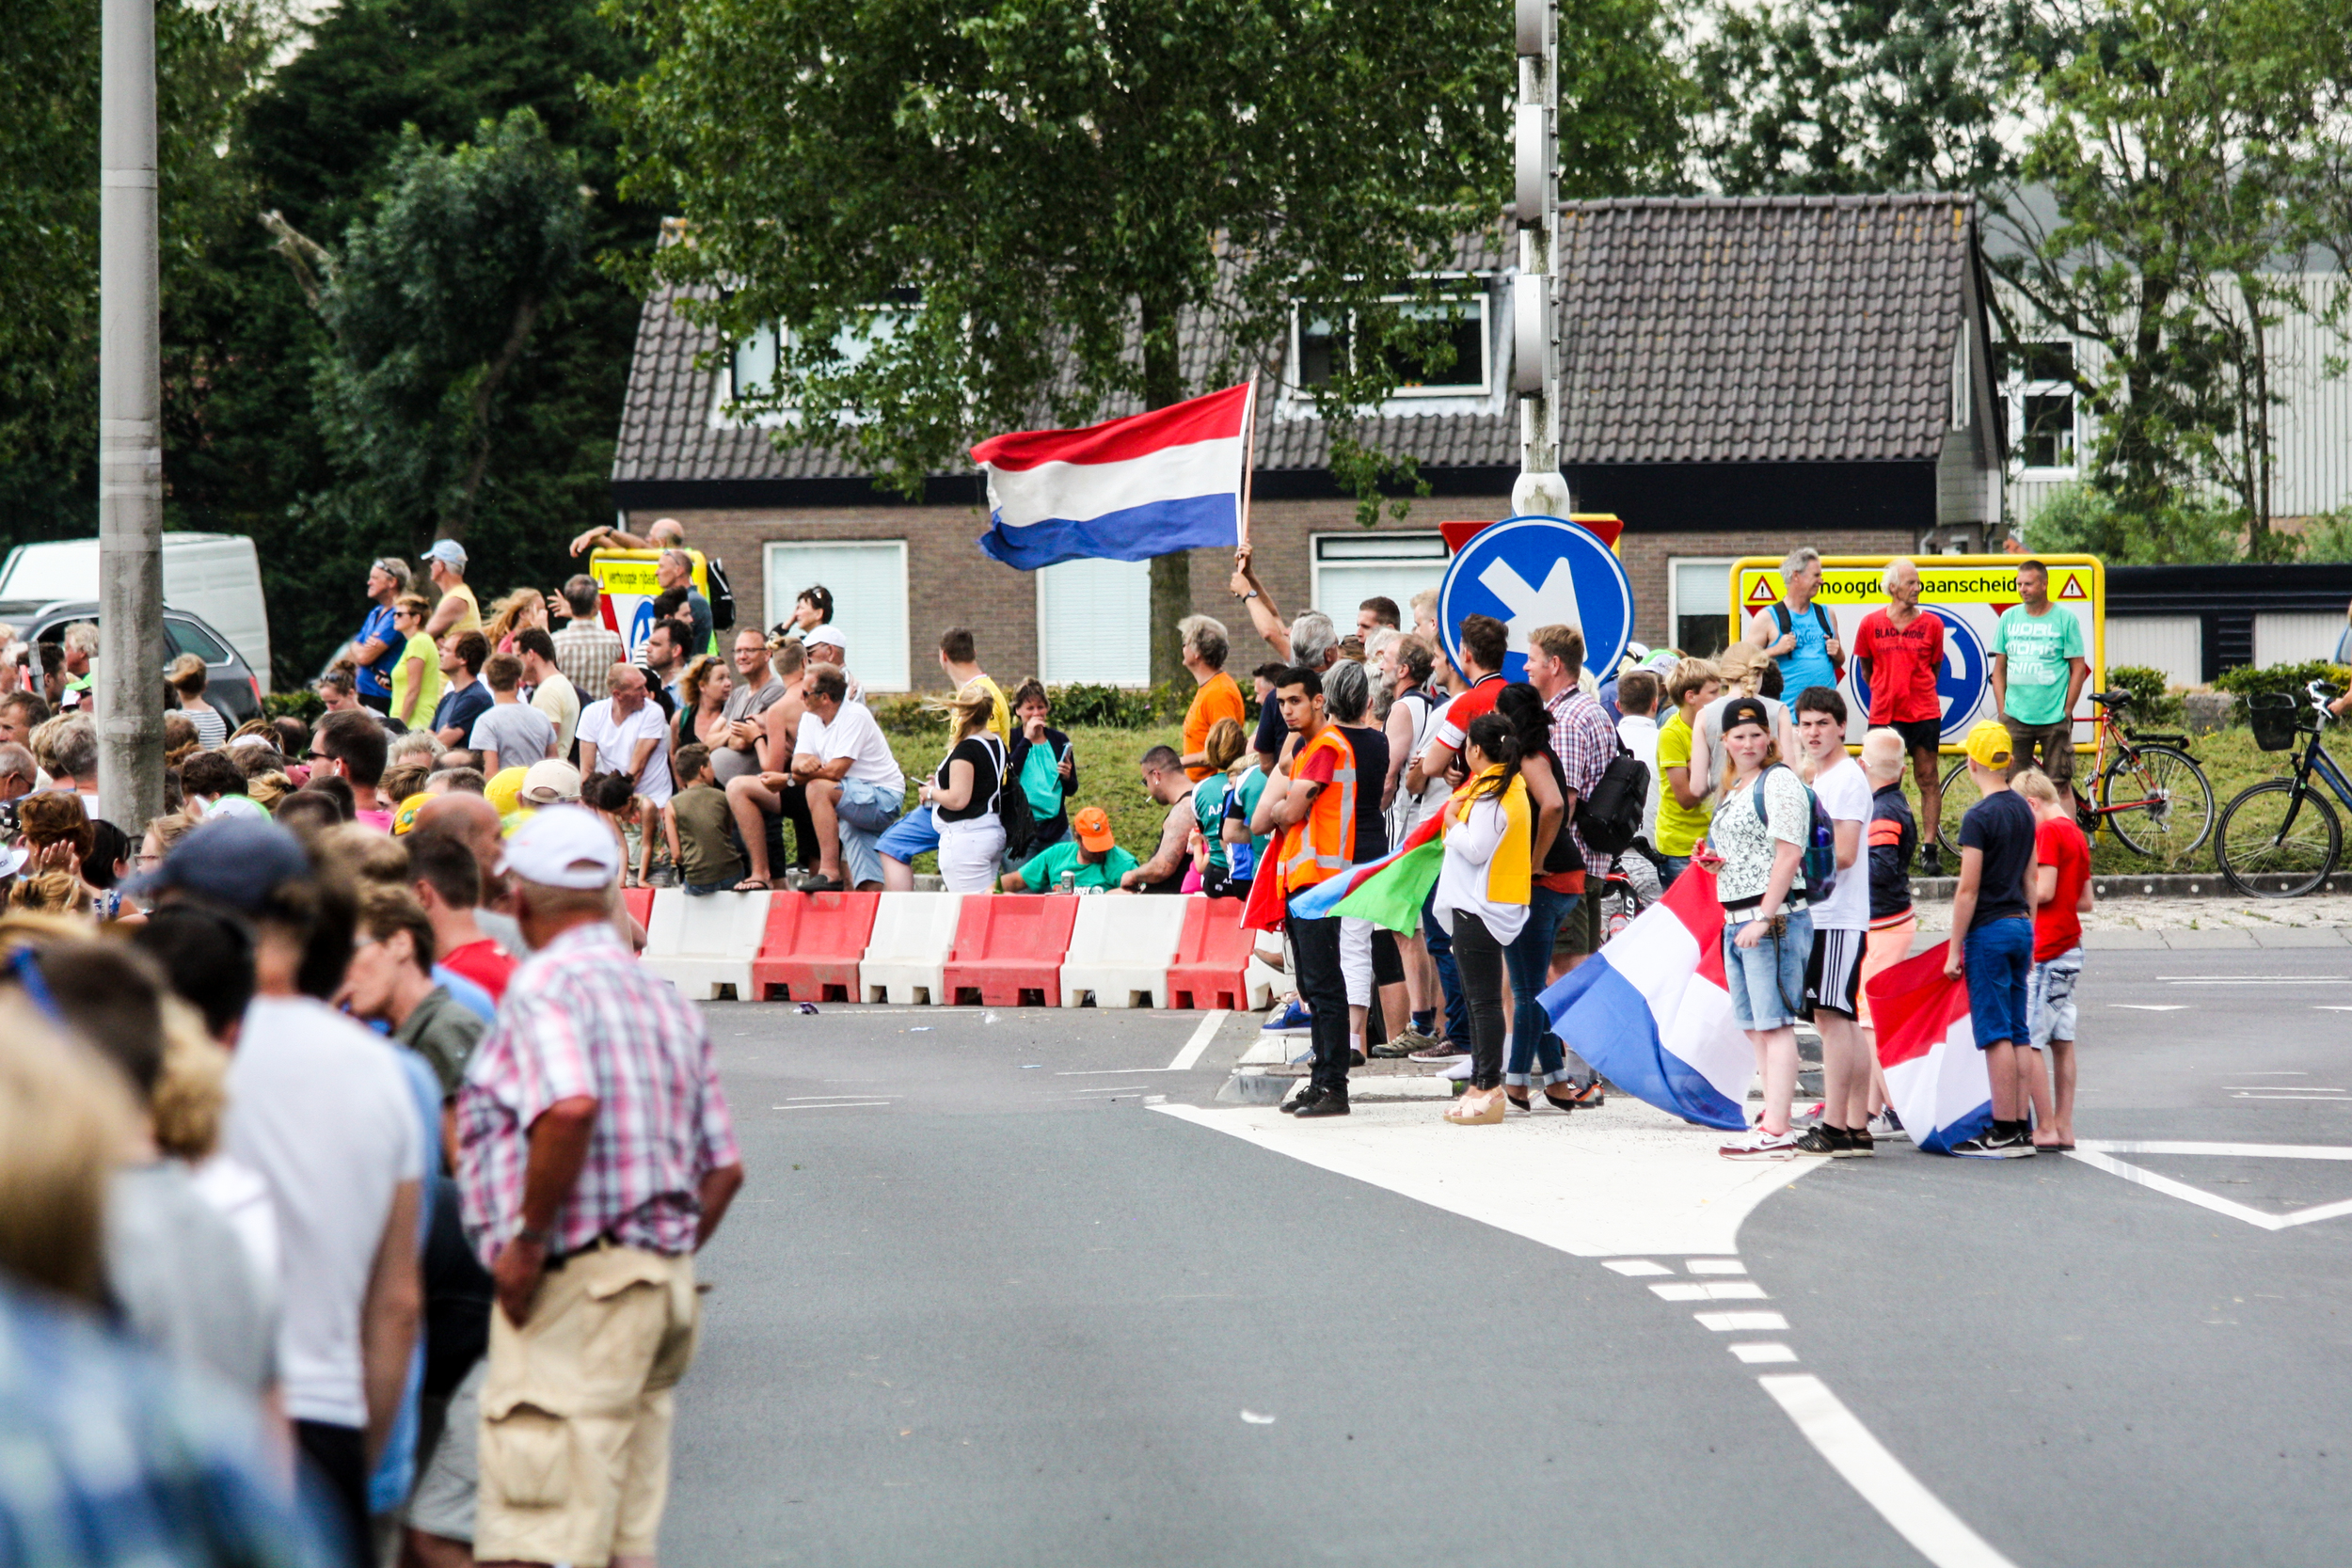 Dutch flags set the scene in the town of Gouda and thousands of people lined the side of the road for hours to see 30 seconds of pro-cycling. We spent a lot of time chatting with people around us and enjoying the positive atmosphere.